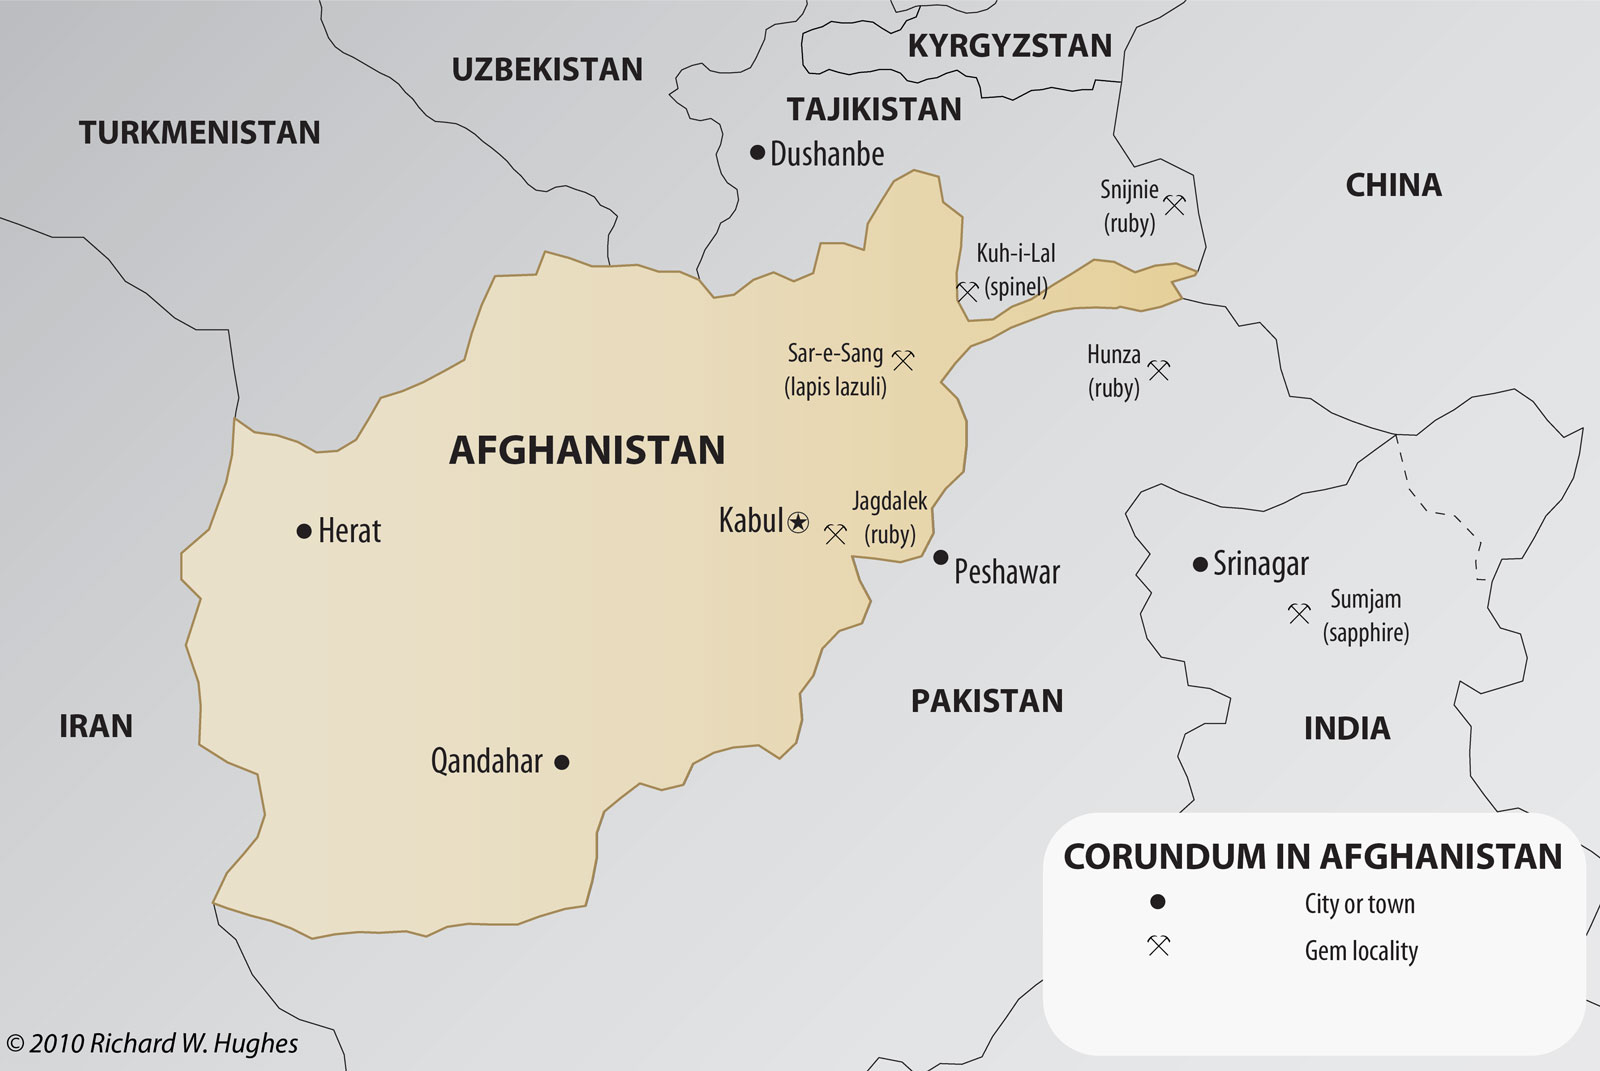 Map of gem localities in Afghanistan and neighboring countries